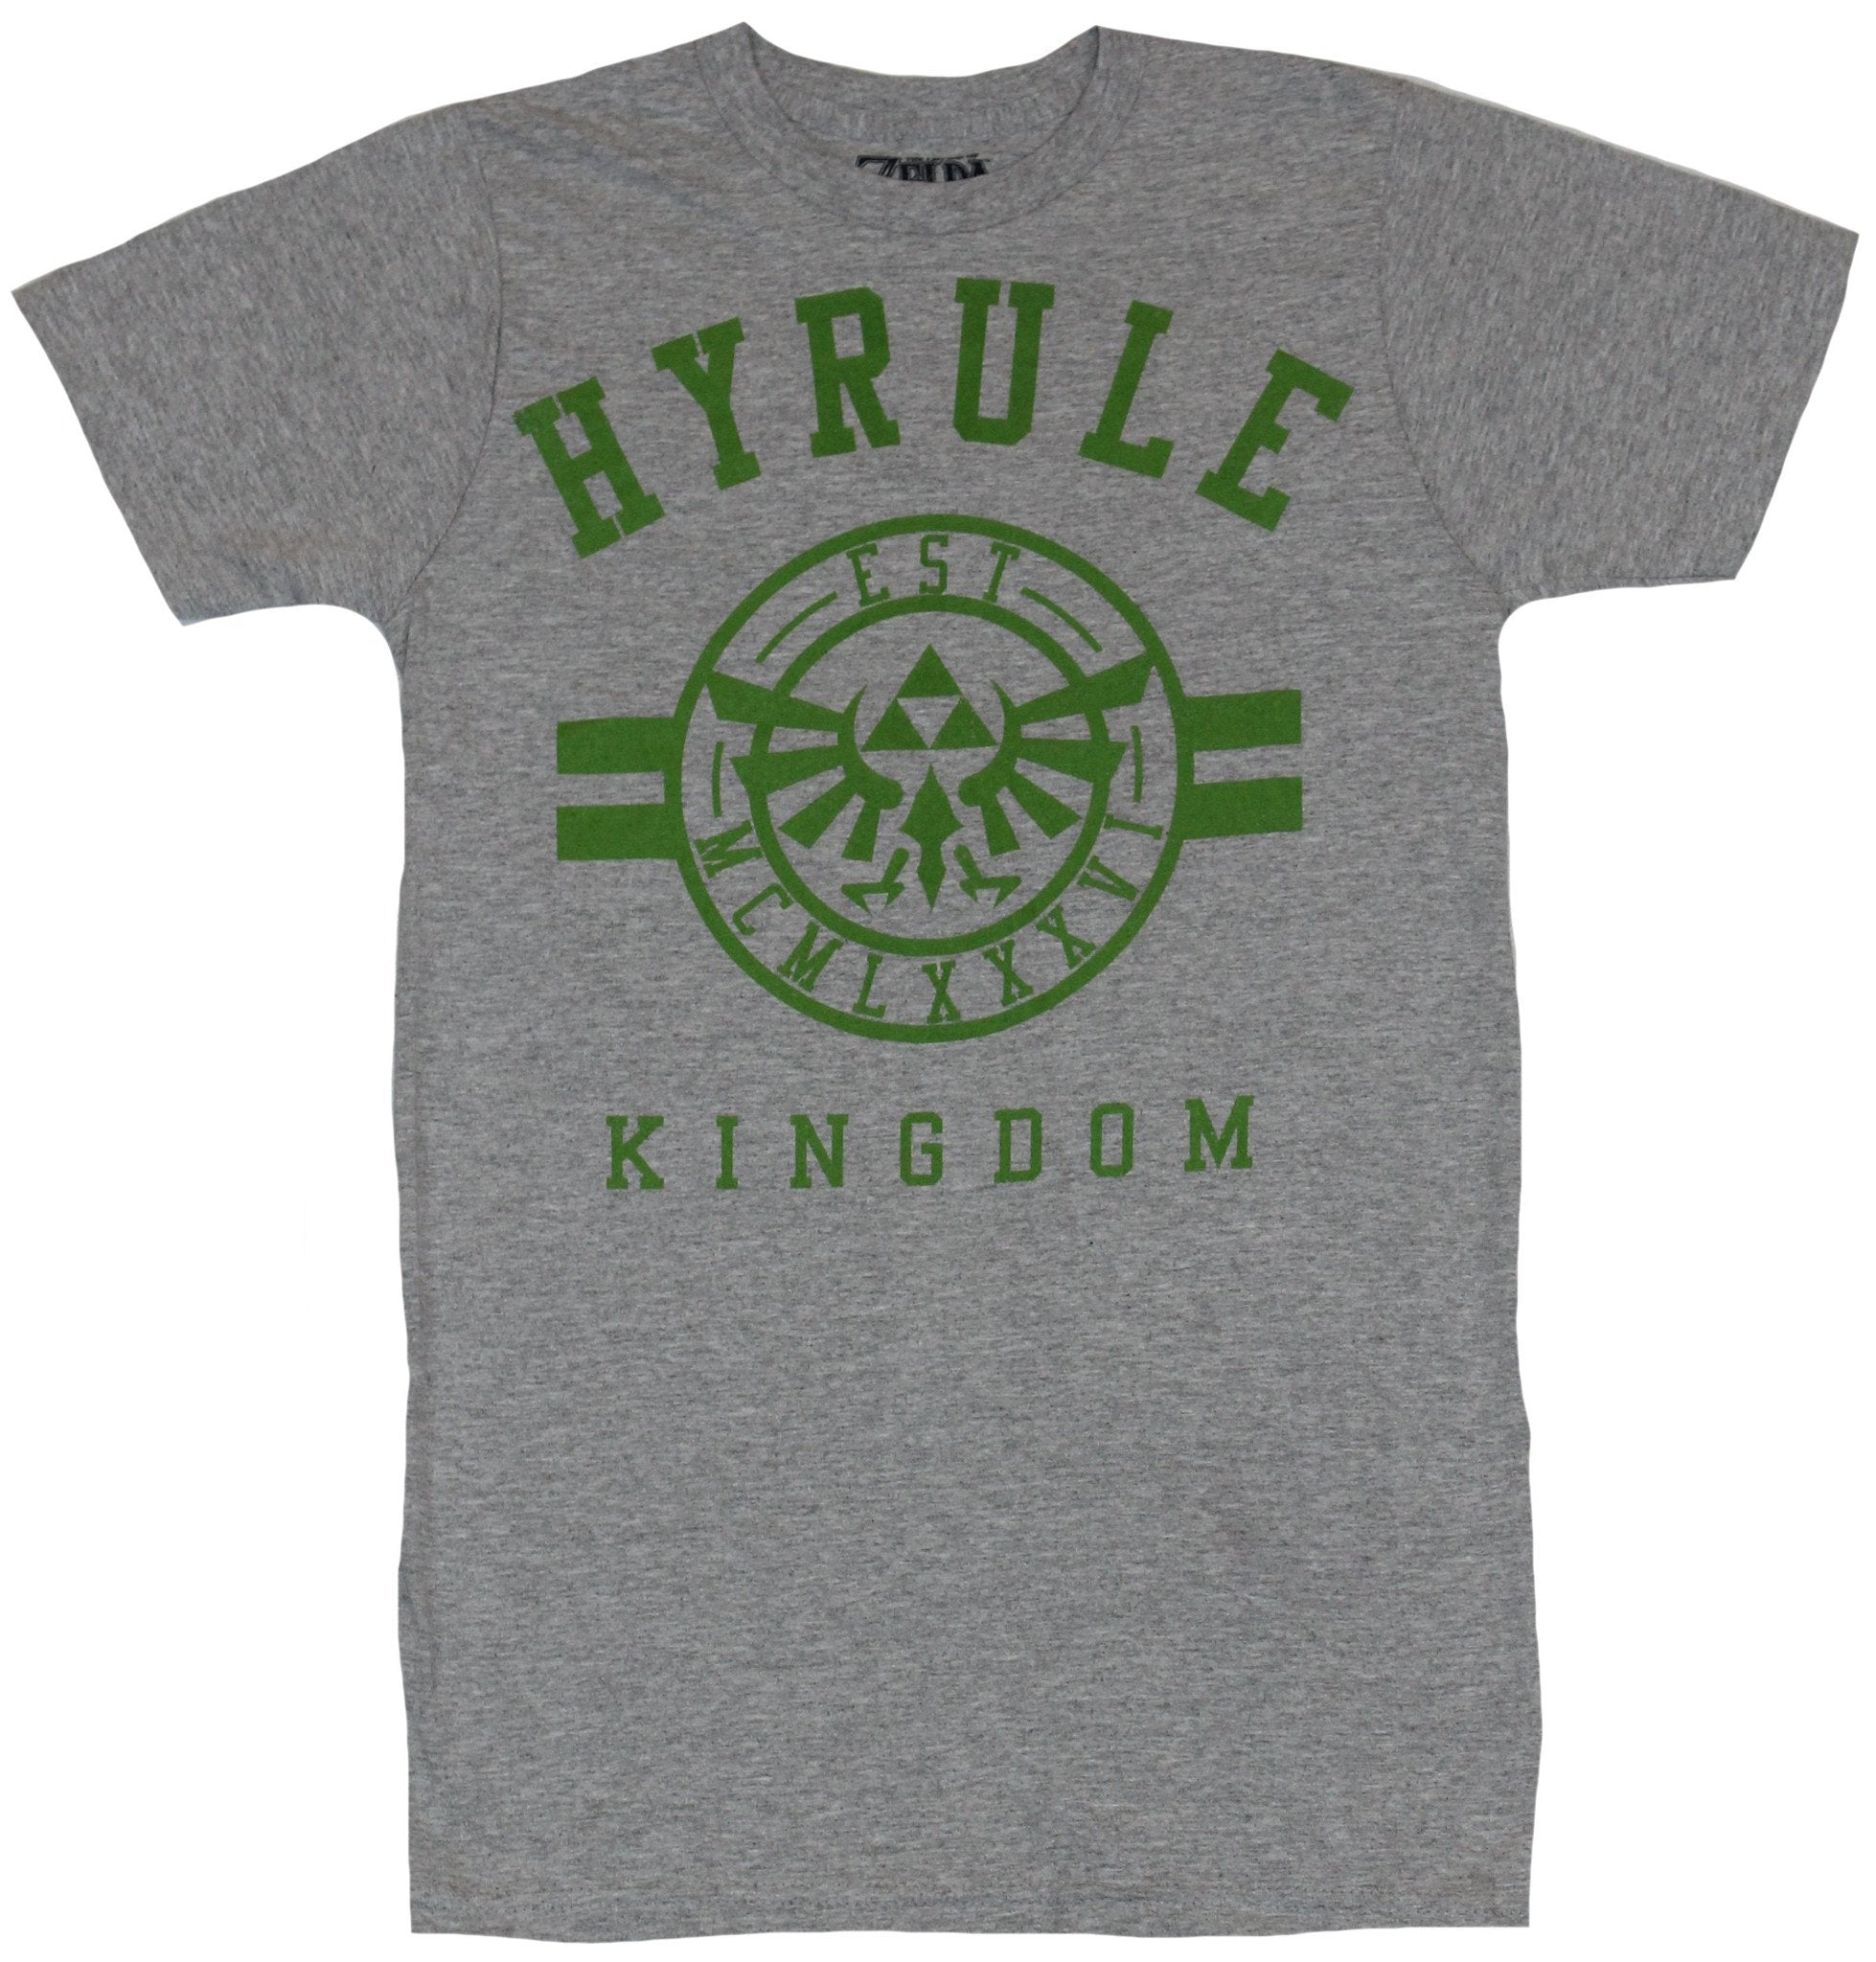 Legend of Zelda Mens T-Shirt - Hyrule Kingdom University Style Logo Image